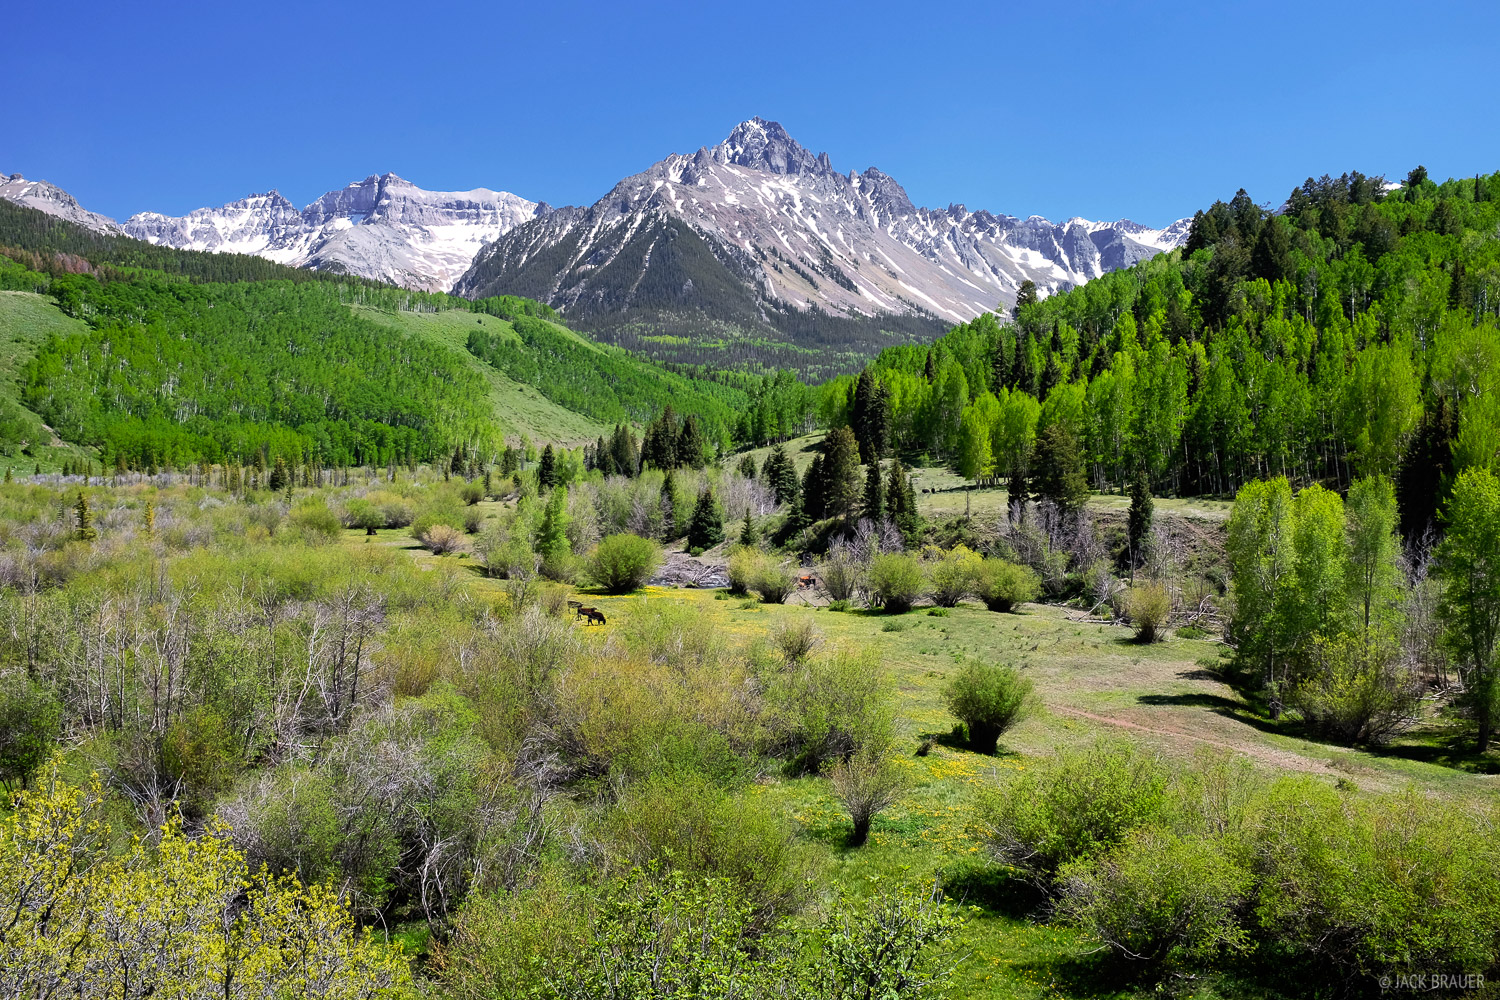 Mt. Sneffels and the brilliant spring greens as seen from County Road 7.